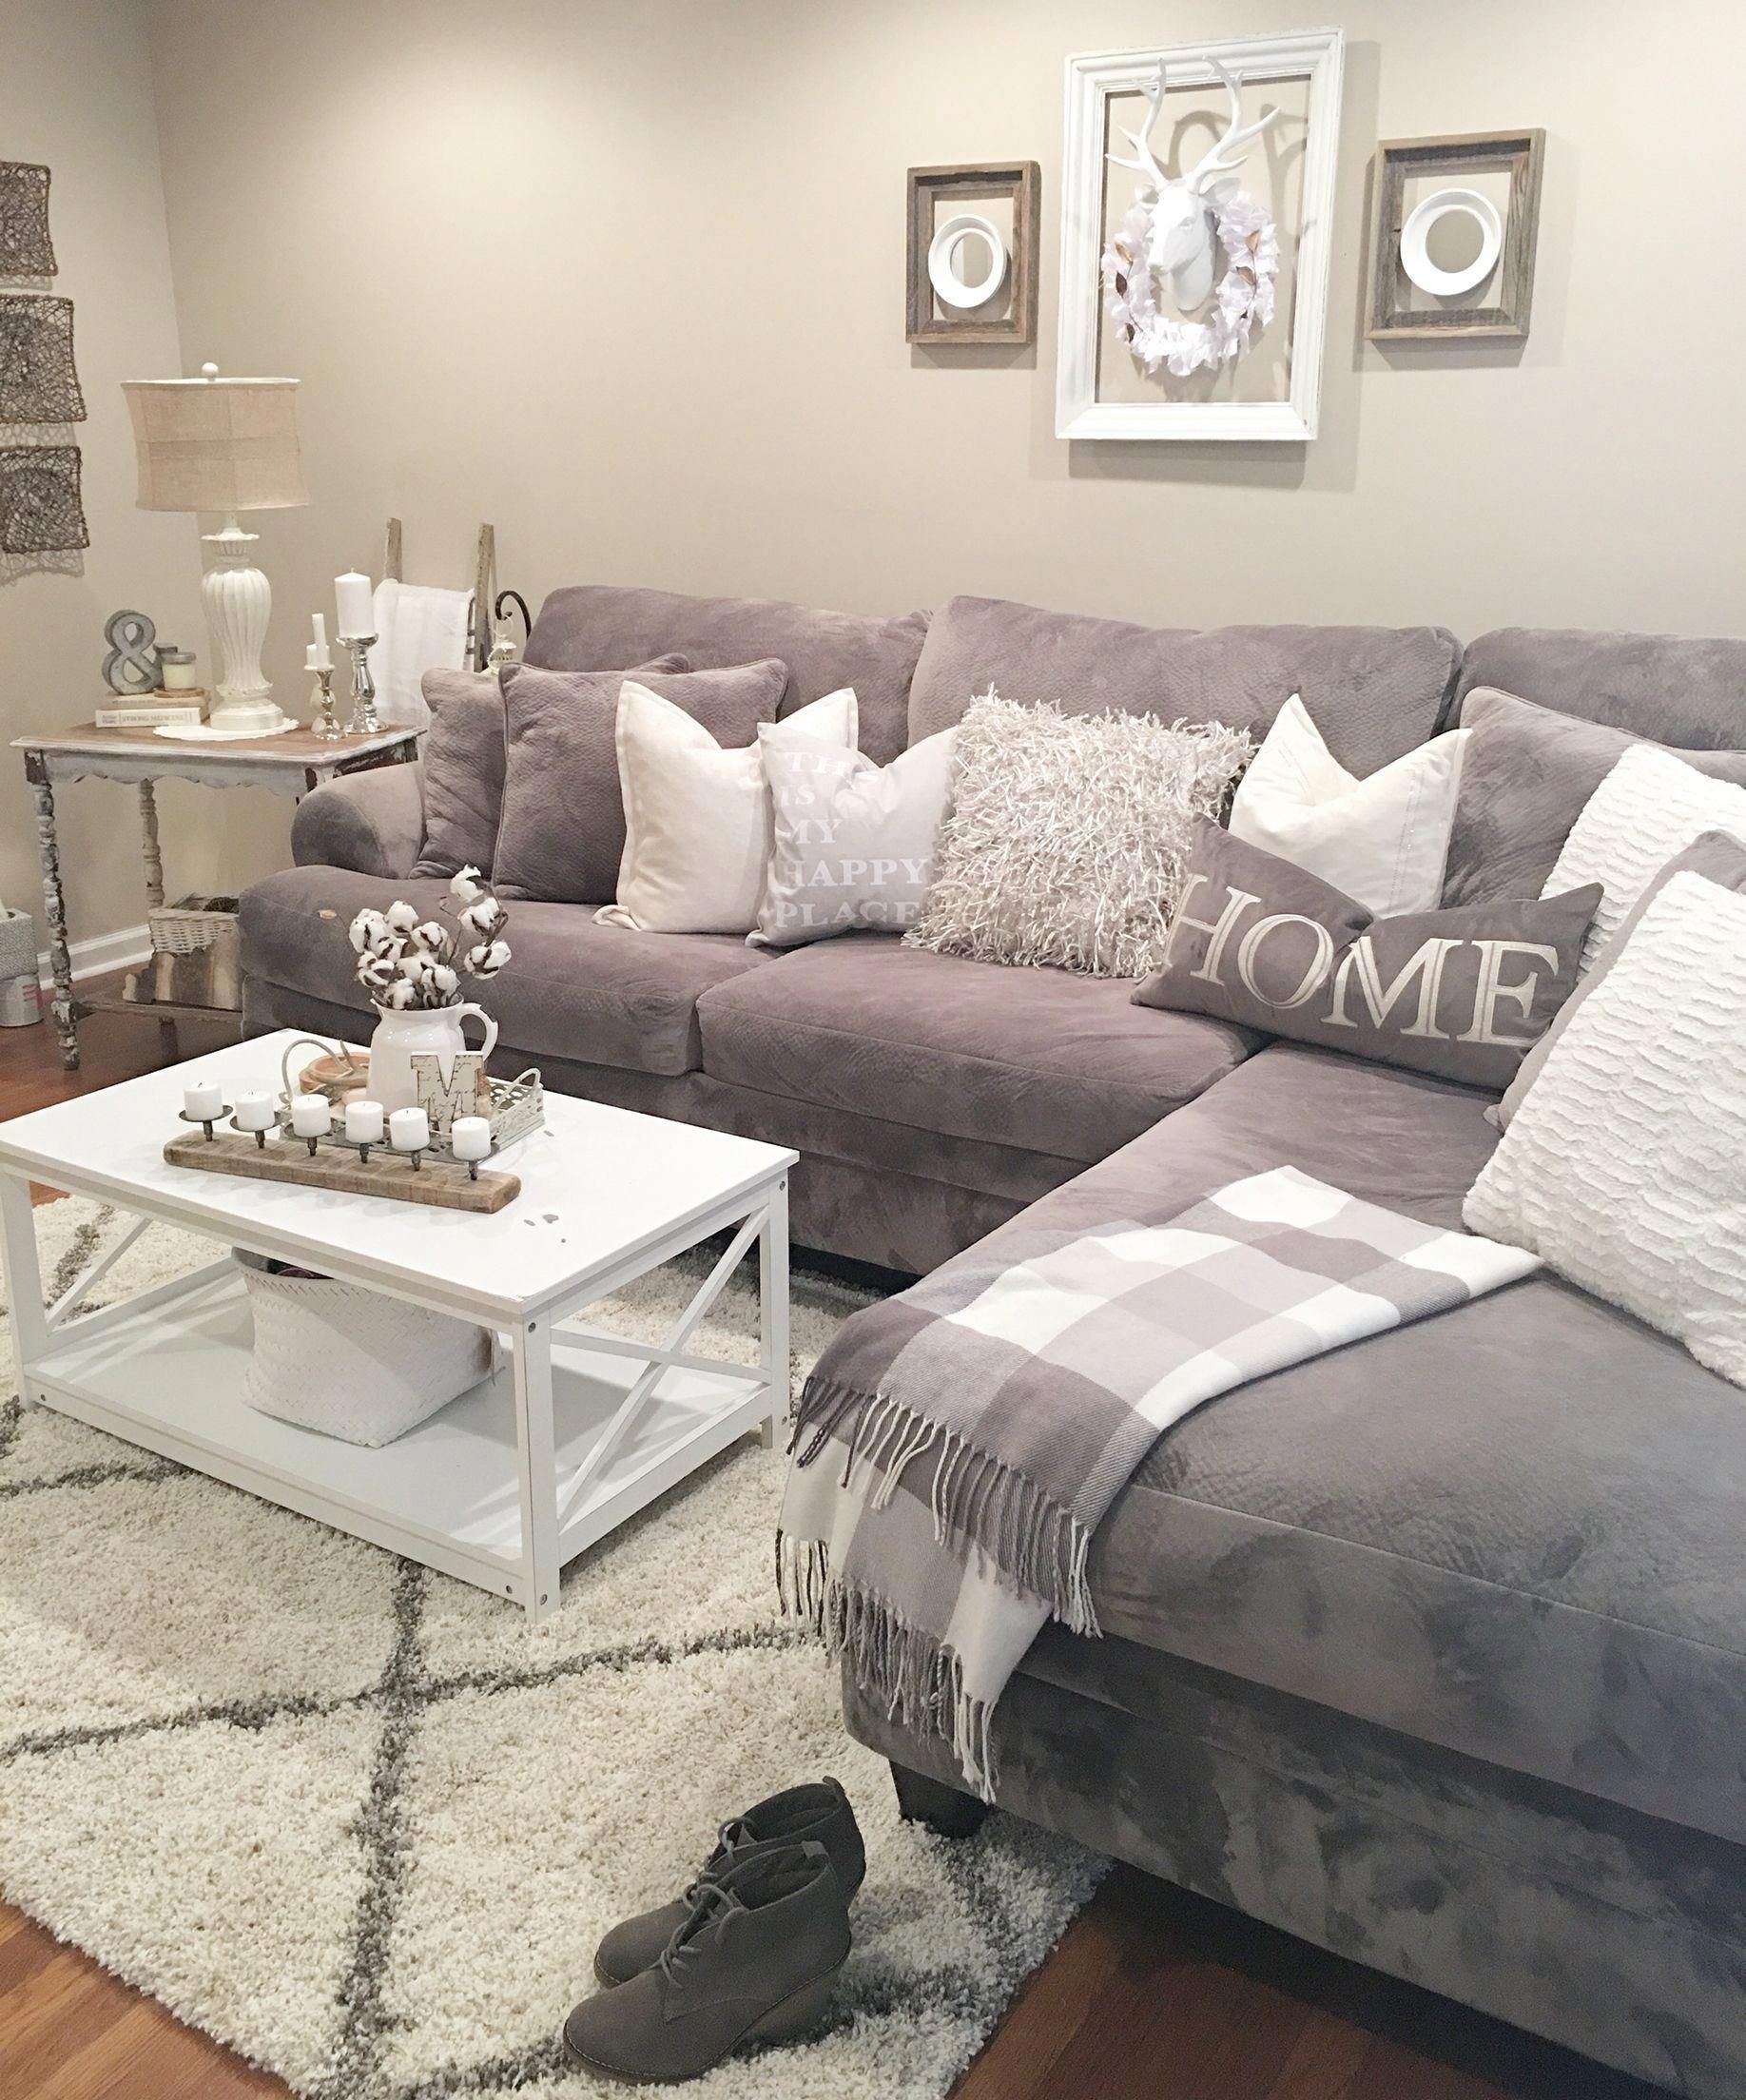 Most Comfortable And Cozy Living Room Ideas Cozy Livingroom Apartment Rustic Farmhouselivingroomru Primark Home Farm House Living Room Living Room Remodel #rustic #living #room #apartment